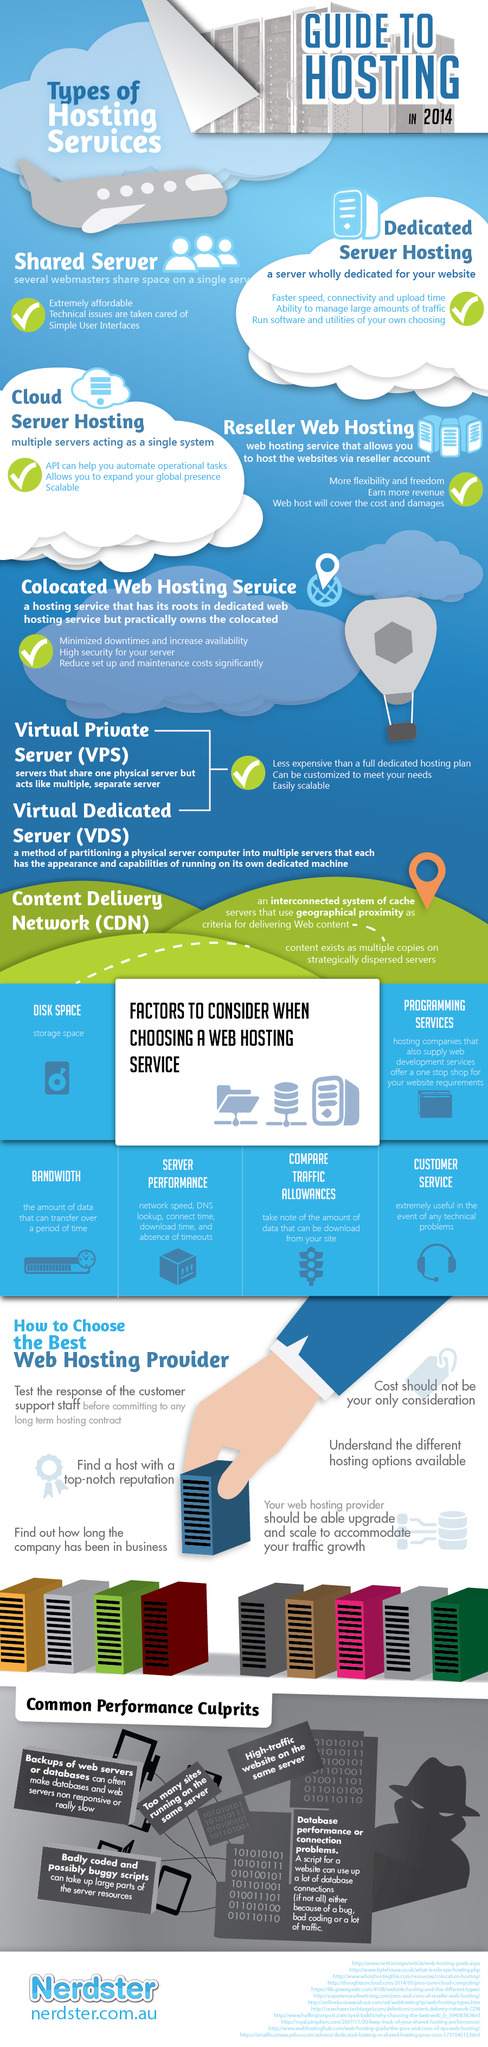 Colocated Web Hosting: Scale Up Your Business to a Co-Located Host